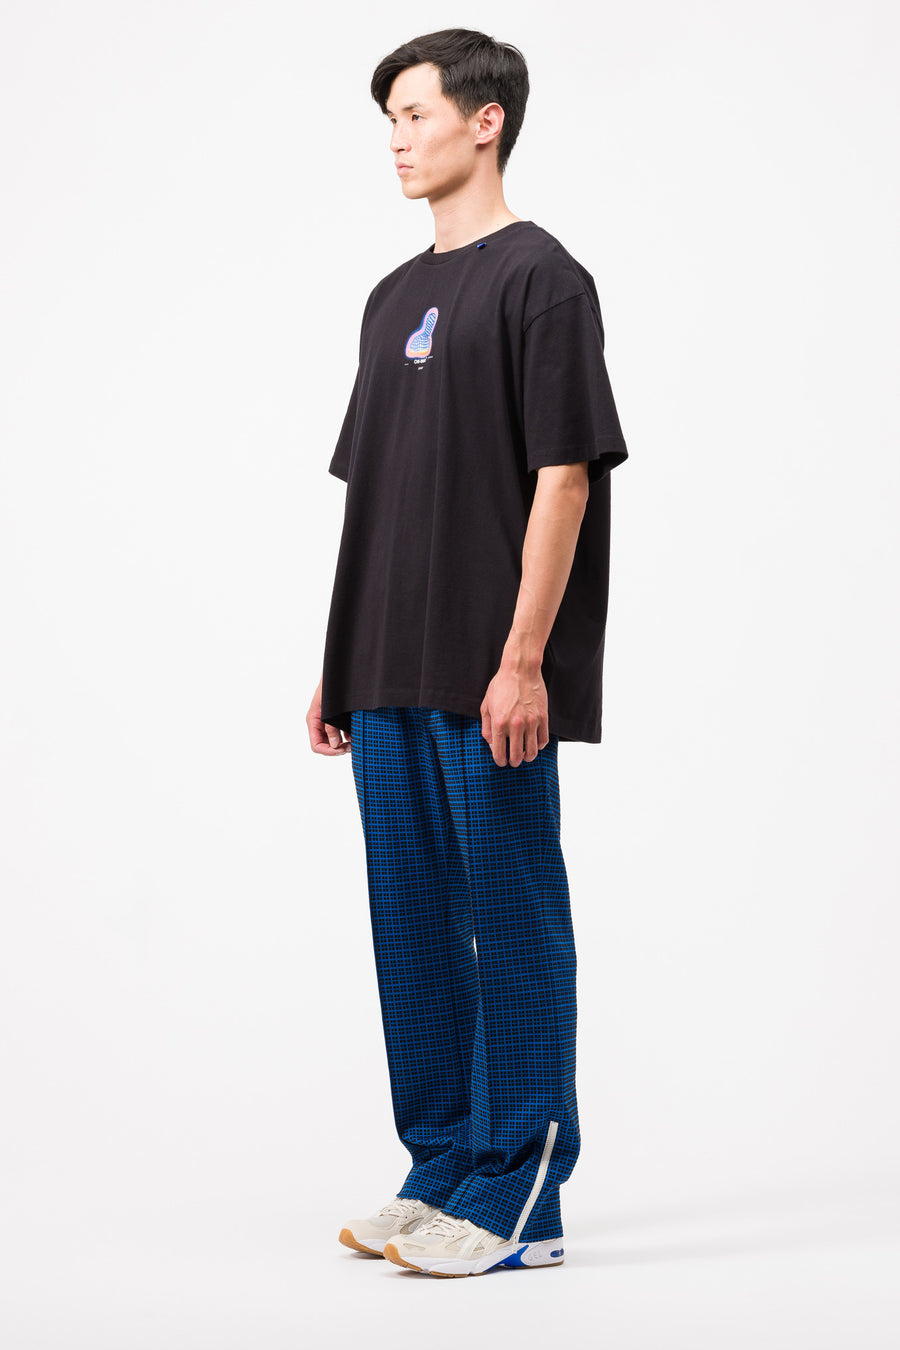 Off-White Thermo Men S/S Over T-Shirt in Black/Multi - Notre